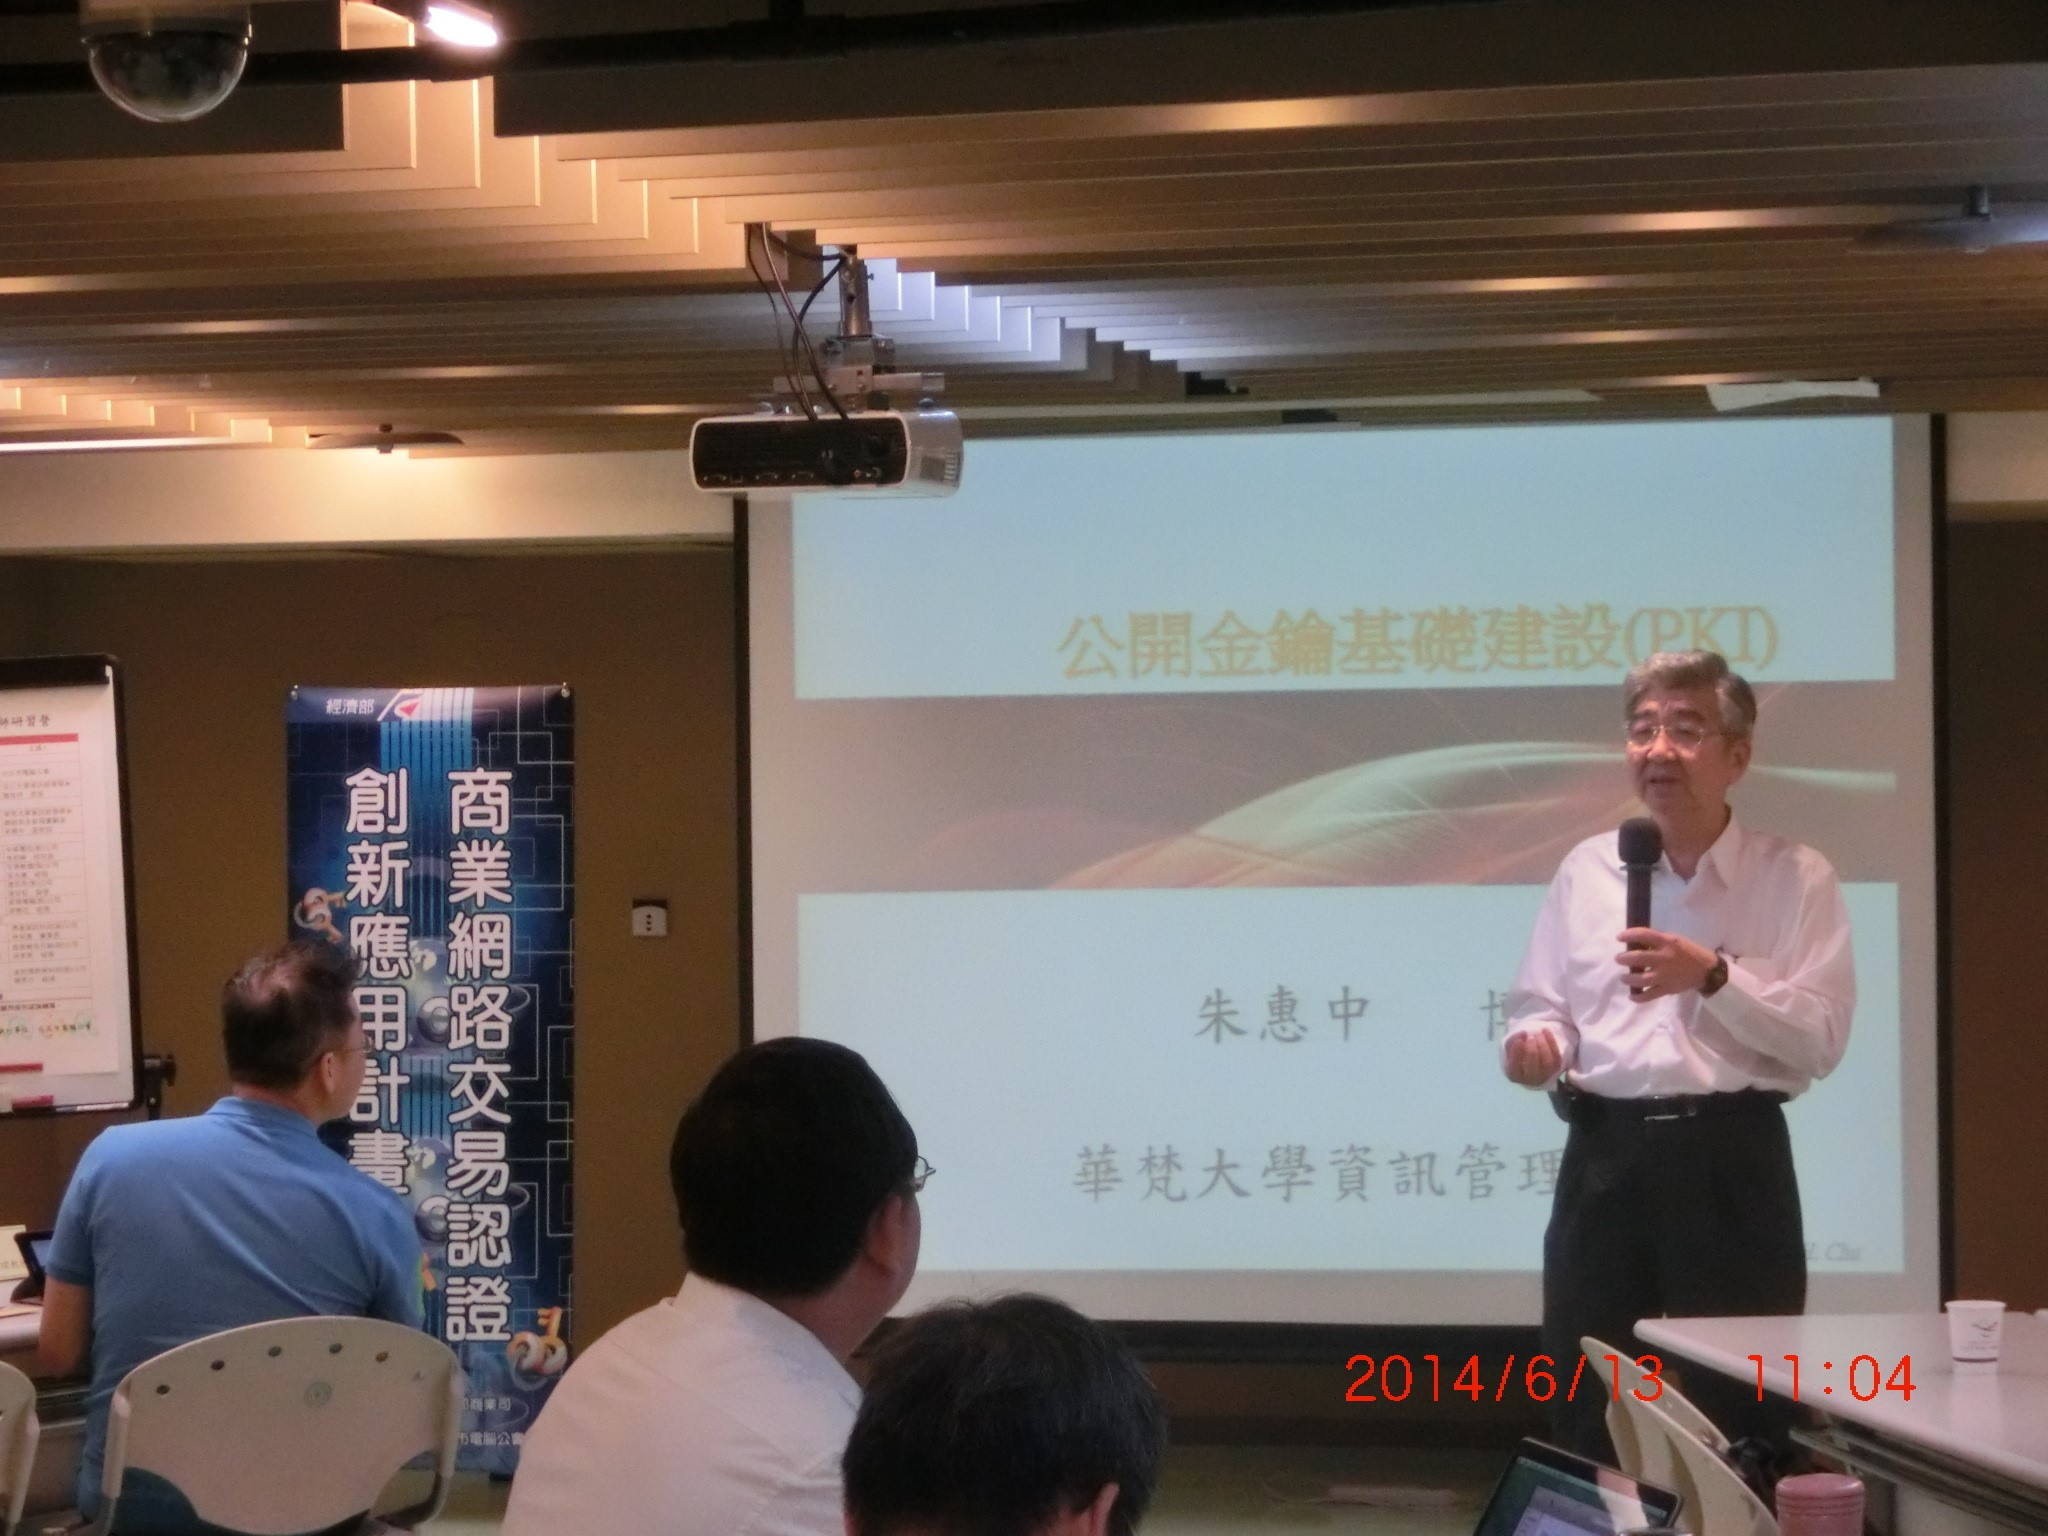 Hui Zhong Chu, department of Management Information System, Hua Fan University, introduced knowledge about PKI.